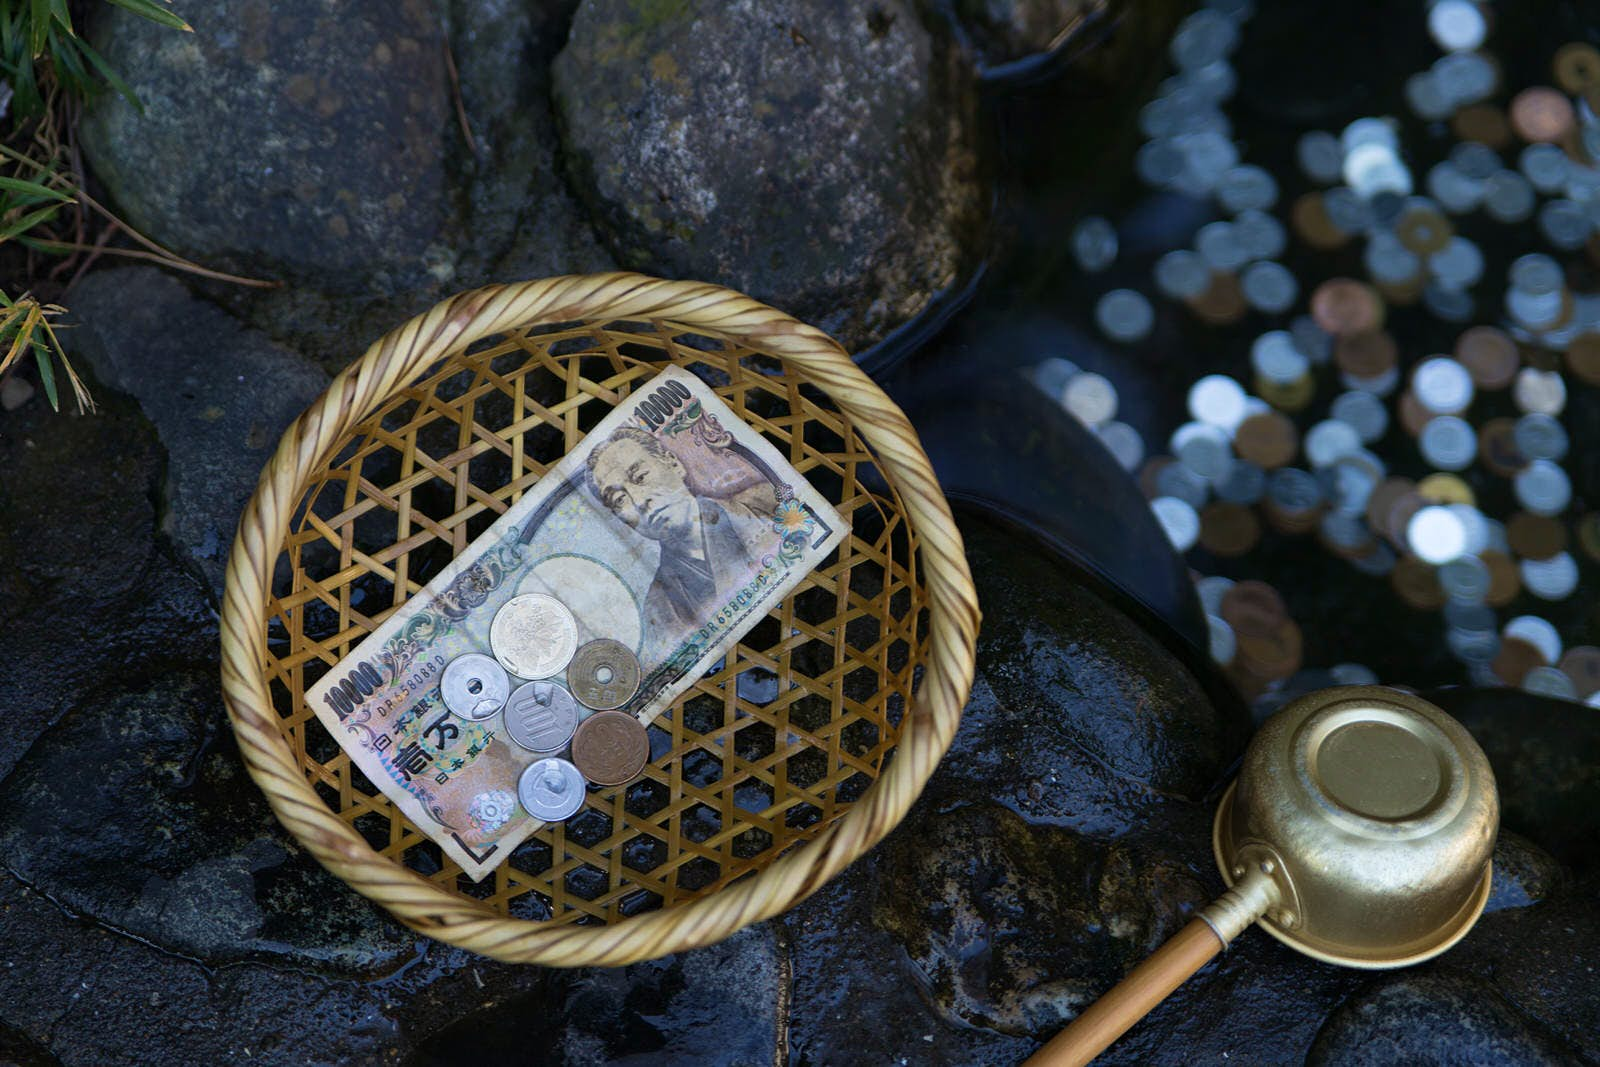 Money at the Zeniarai Benten Shrine in Japan; it is said money that is washed in the water here will double